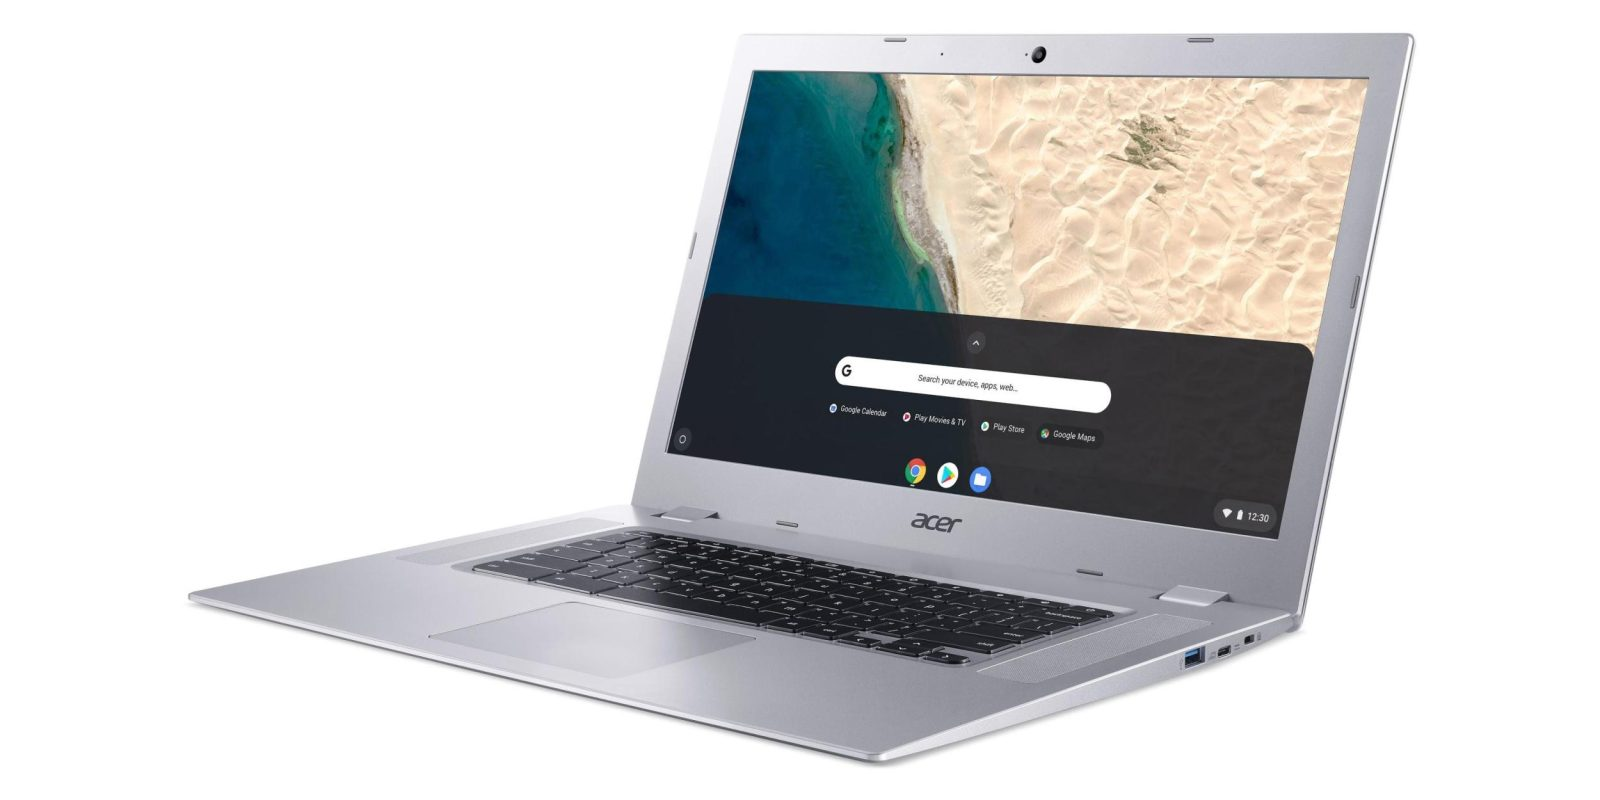 Acer S Chromebook 315 Is One Of The First Chrome Os Devices Powered By Amd 9to5google